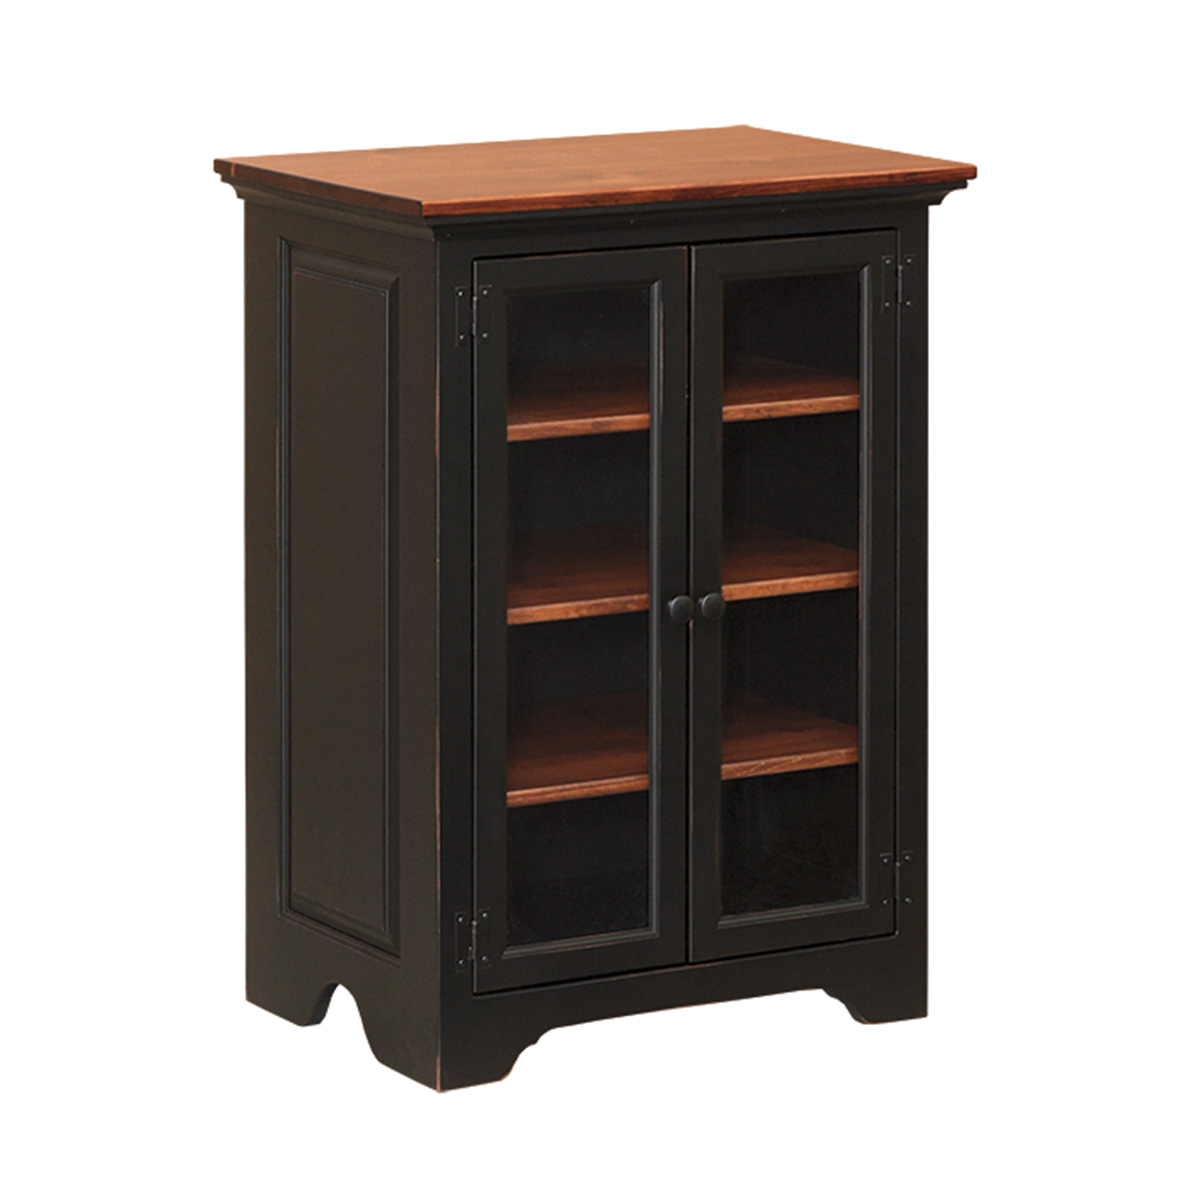 Stereo Cabinet With Glass Doors Peaceful Valley Amish Furniture for size 1200 X 1200